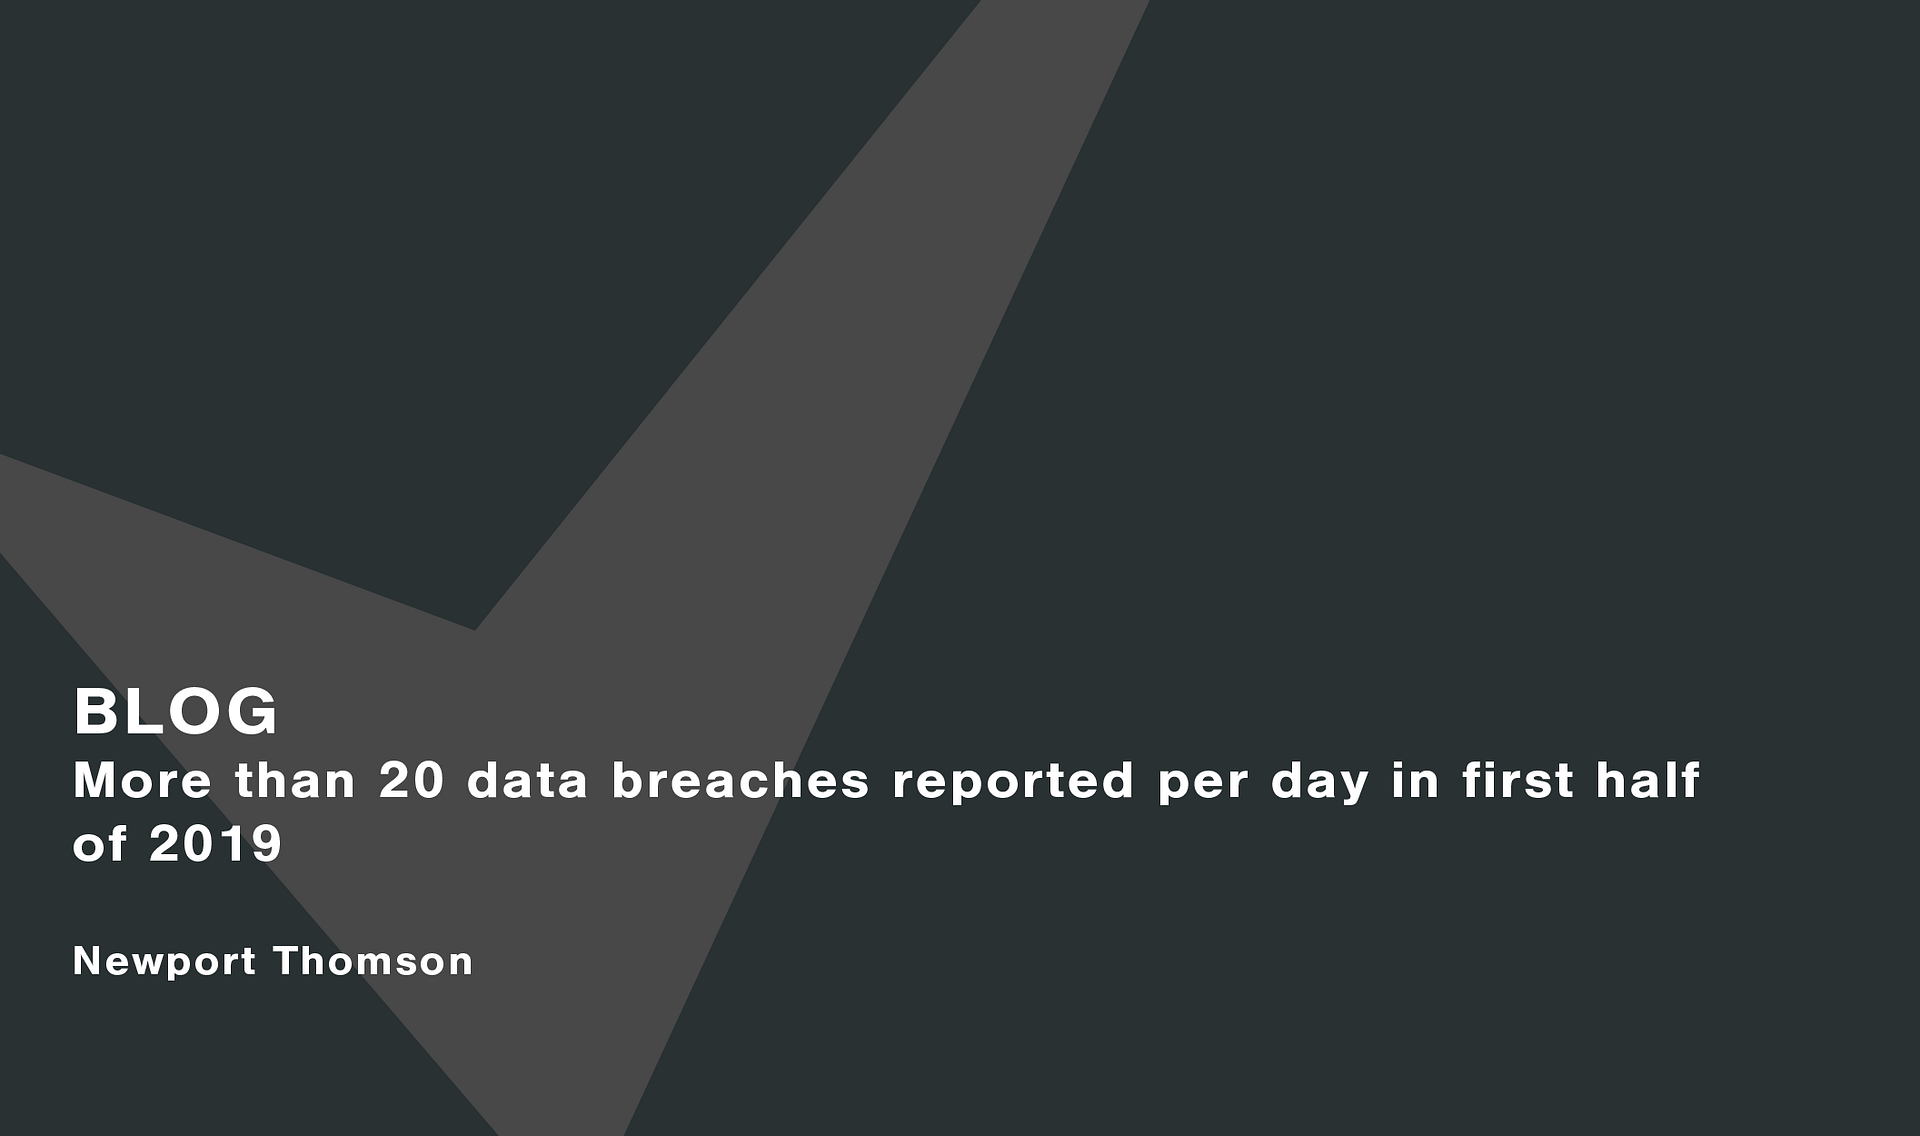 More than 20 data breaches reported per day in first half of 2019 Cassie personal information & consent management